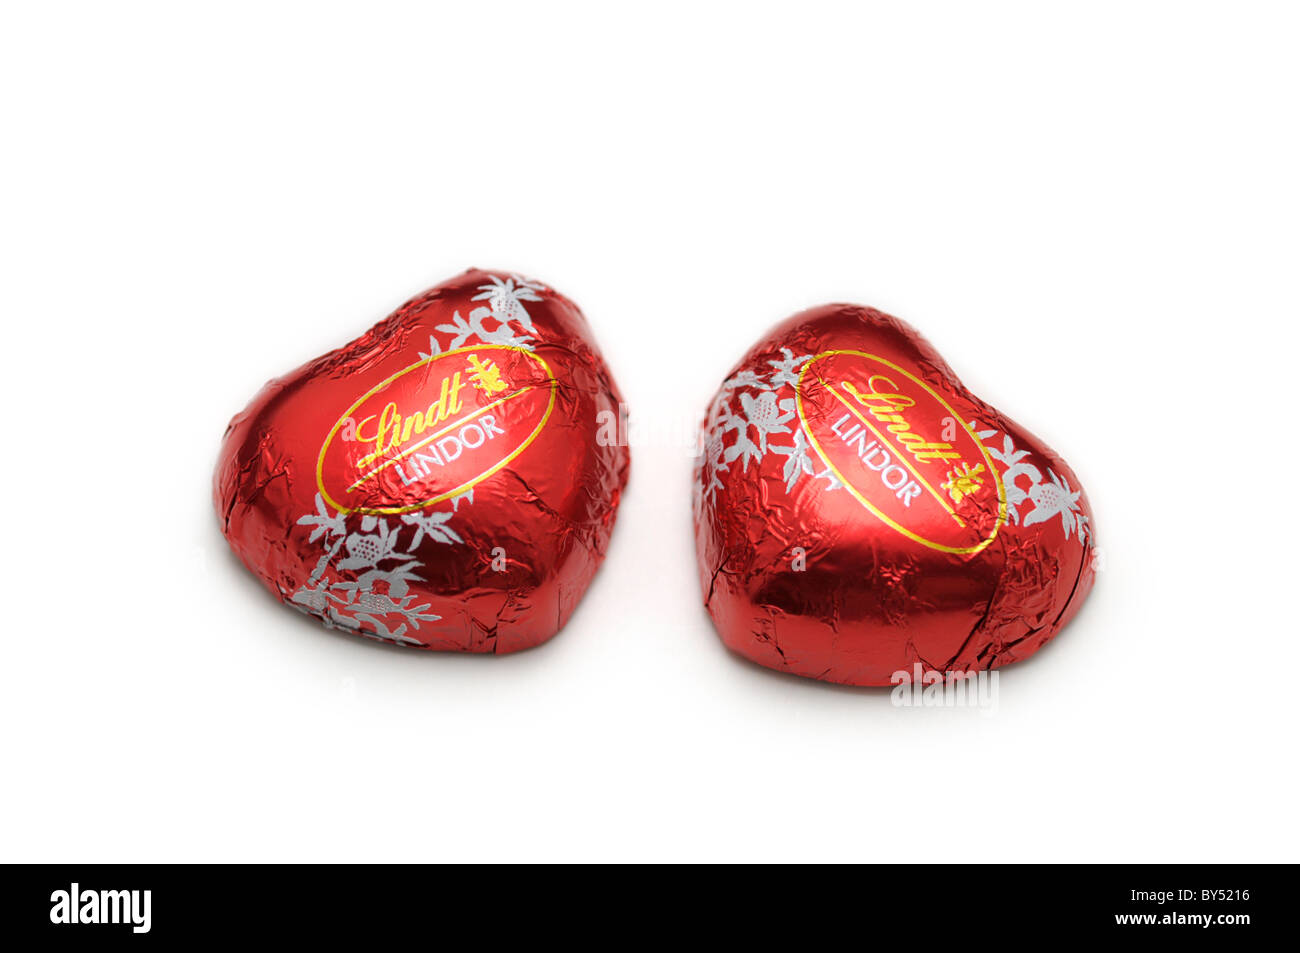 Pair of heart shaped chocolates - Stock Image